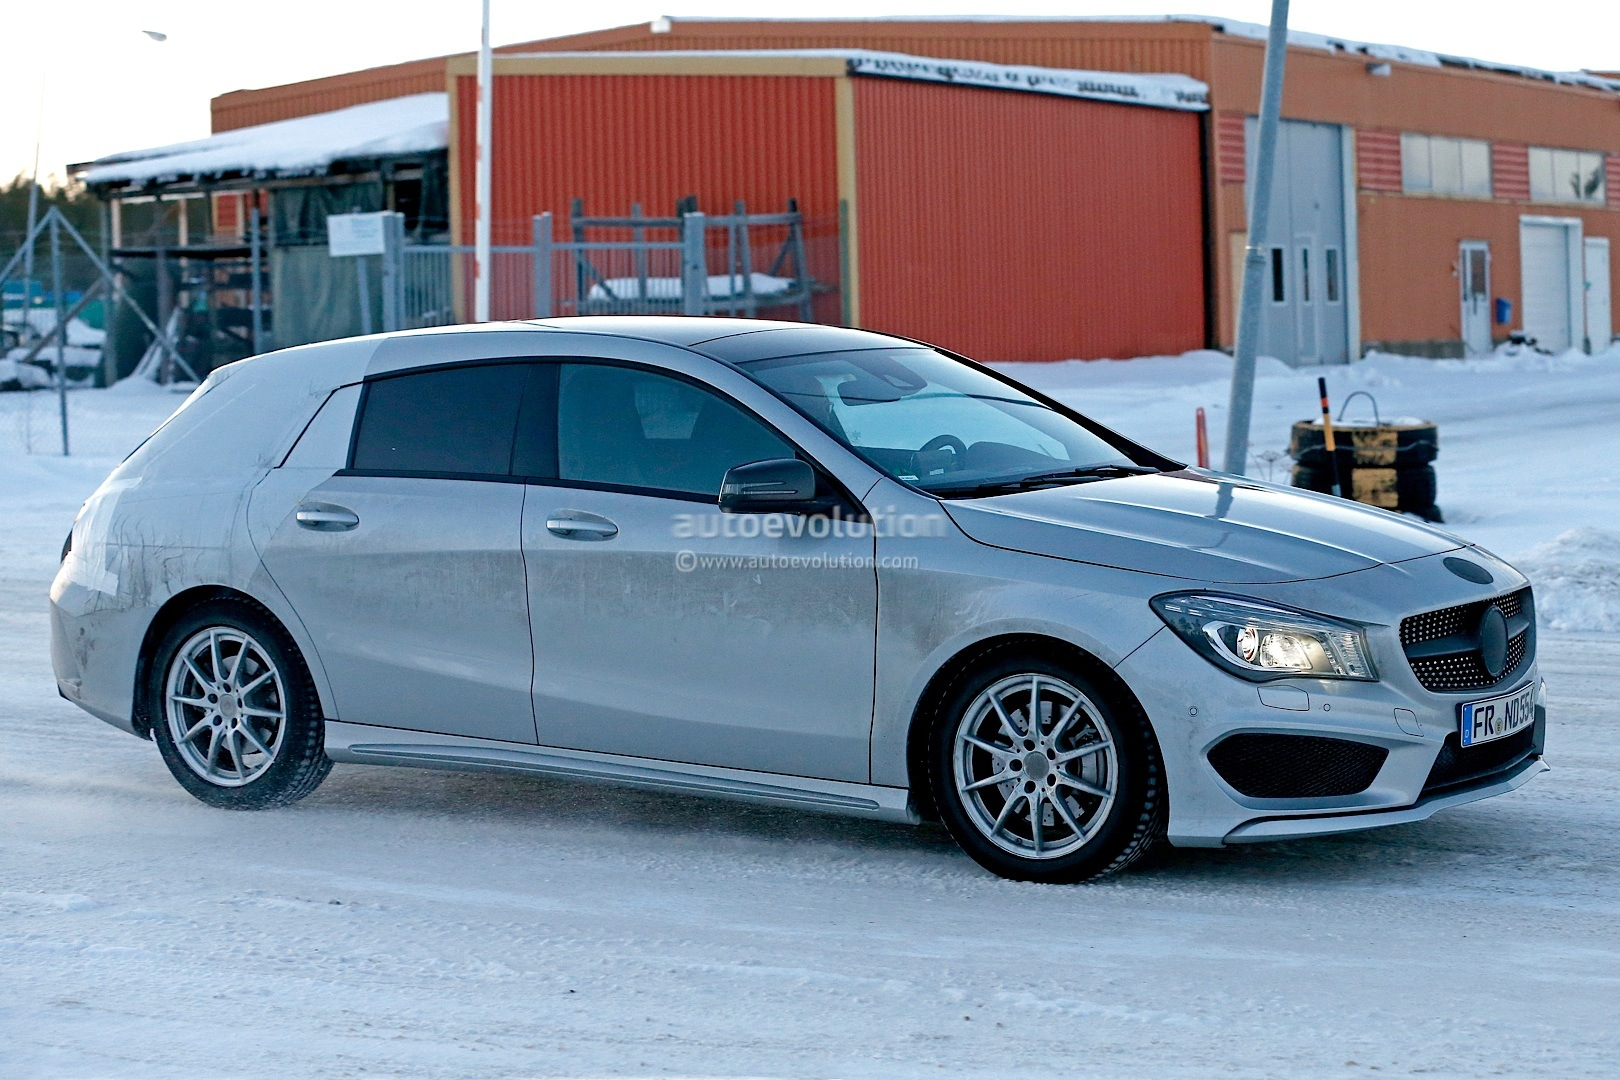 2015 mercedes benz cla shooting brake x117 in santa 39 s for Mercedes benz 2015 cla